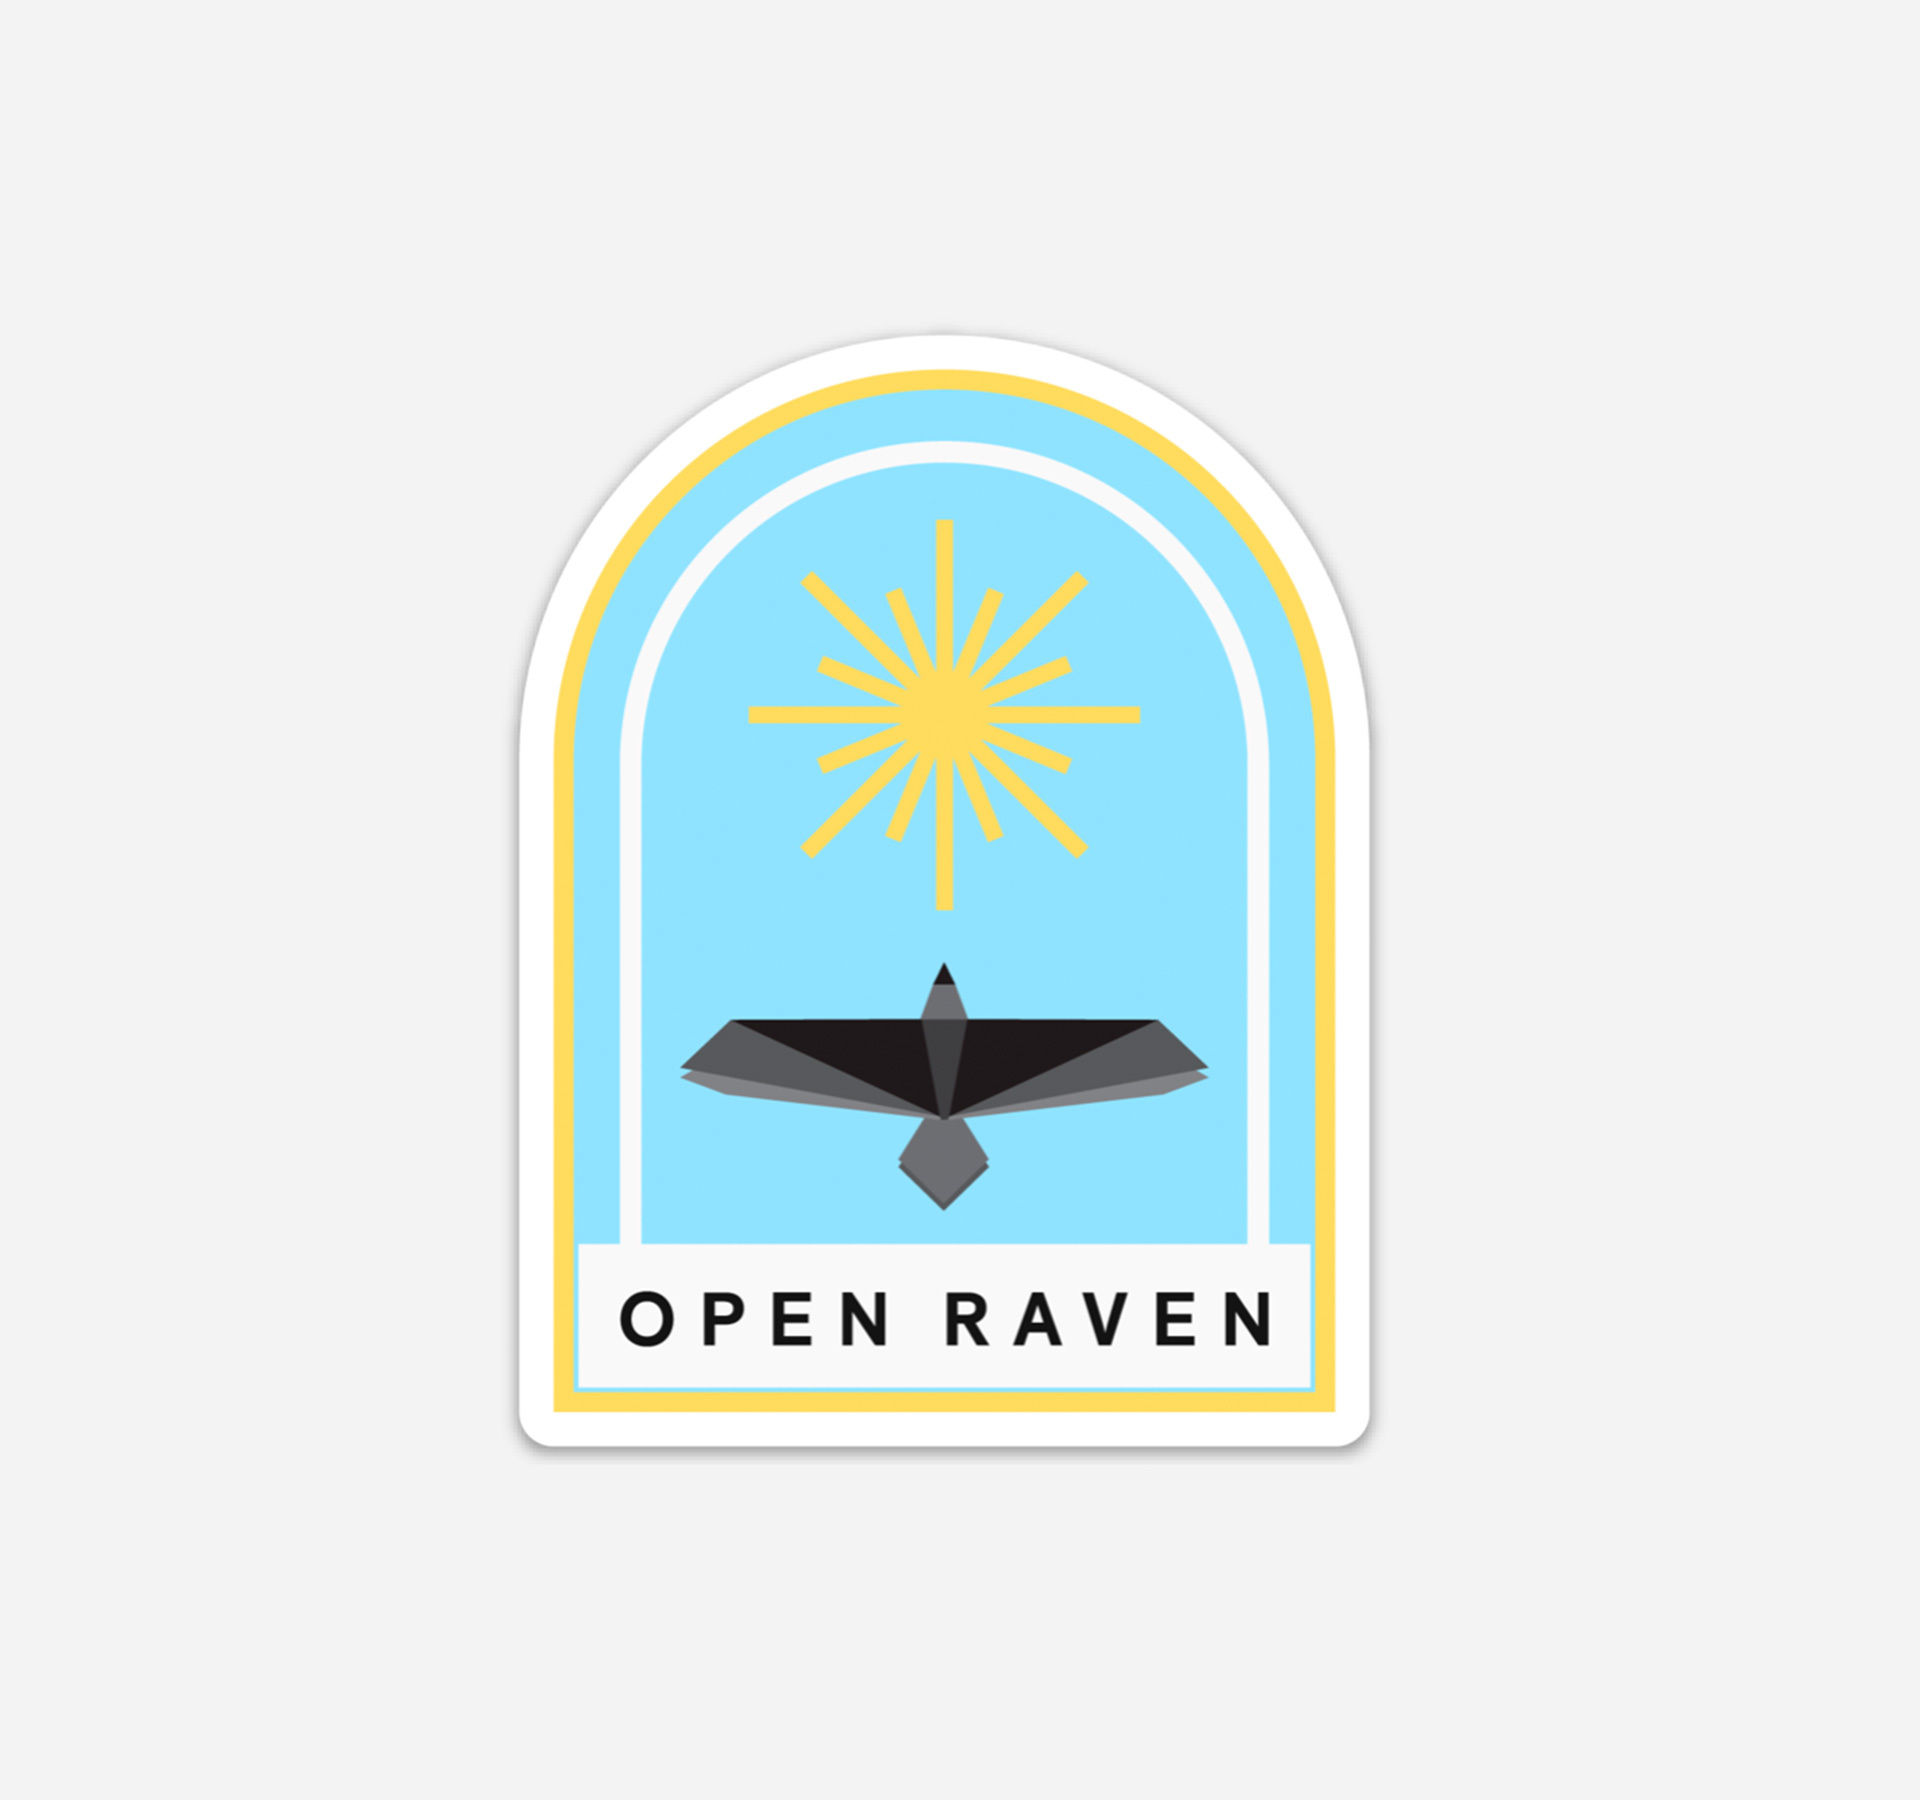 Open Raven sticker with a blue background and a raven flying towards the sun